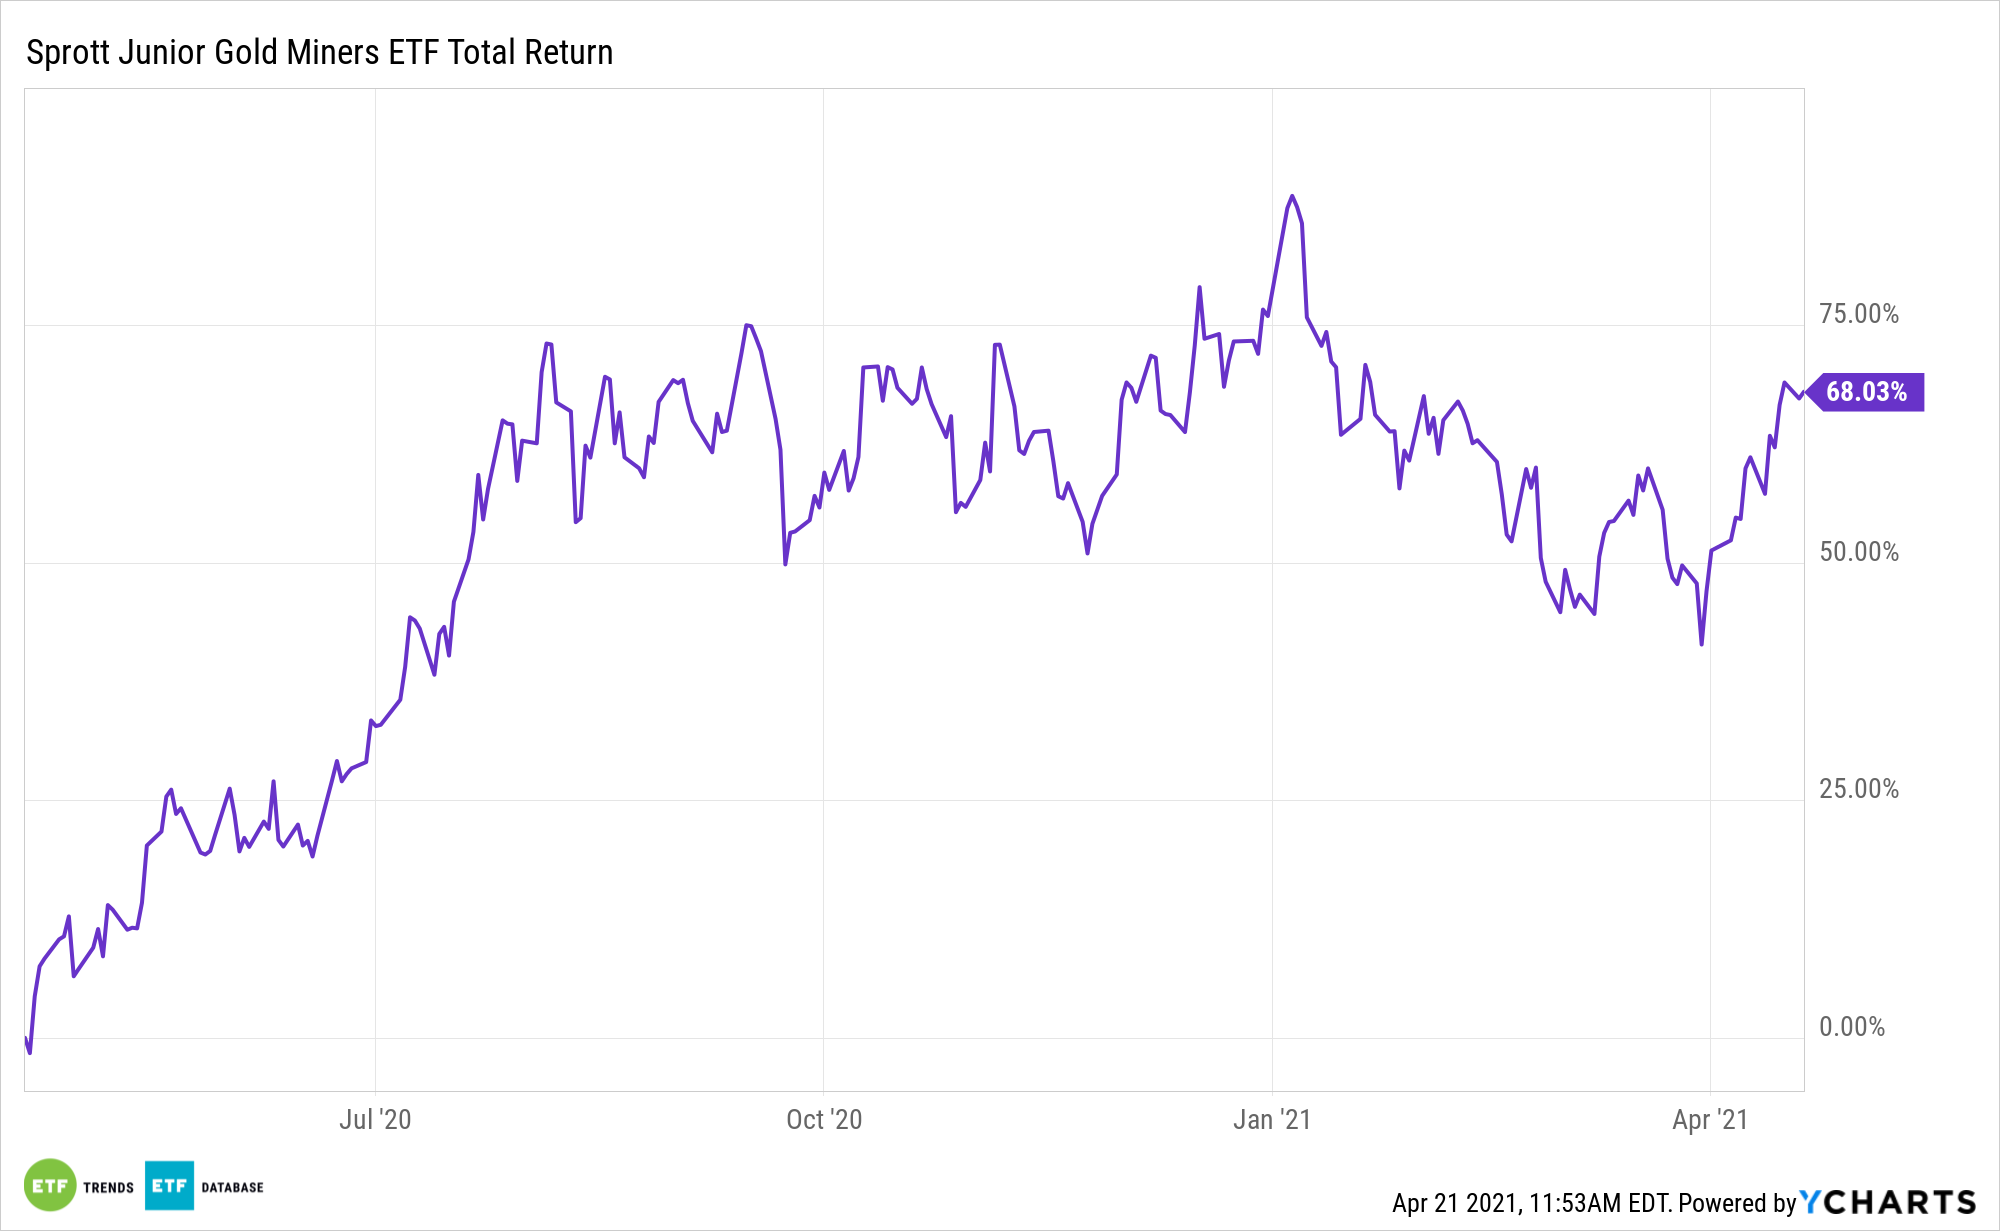 SGDJ 1 Year Total Return